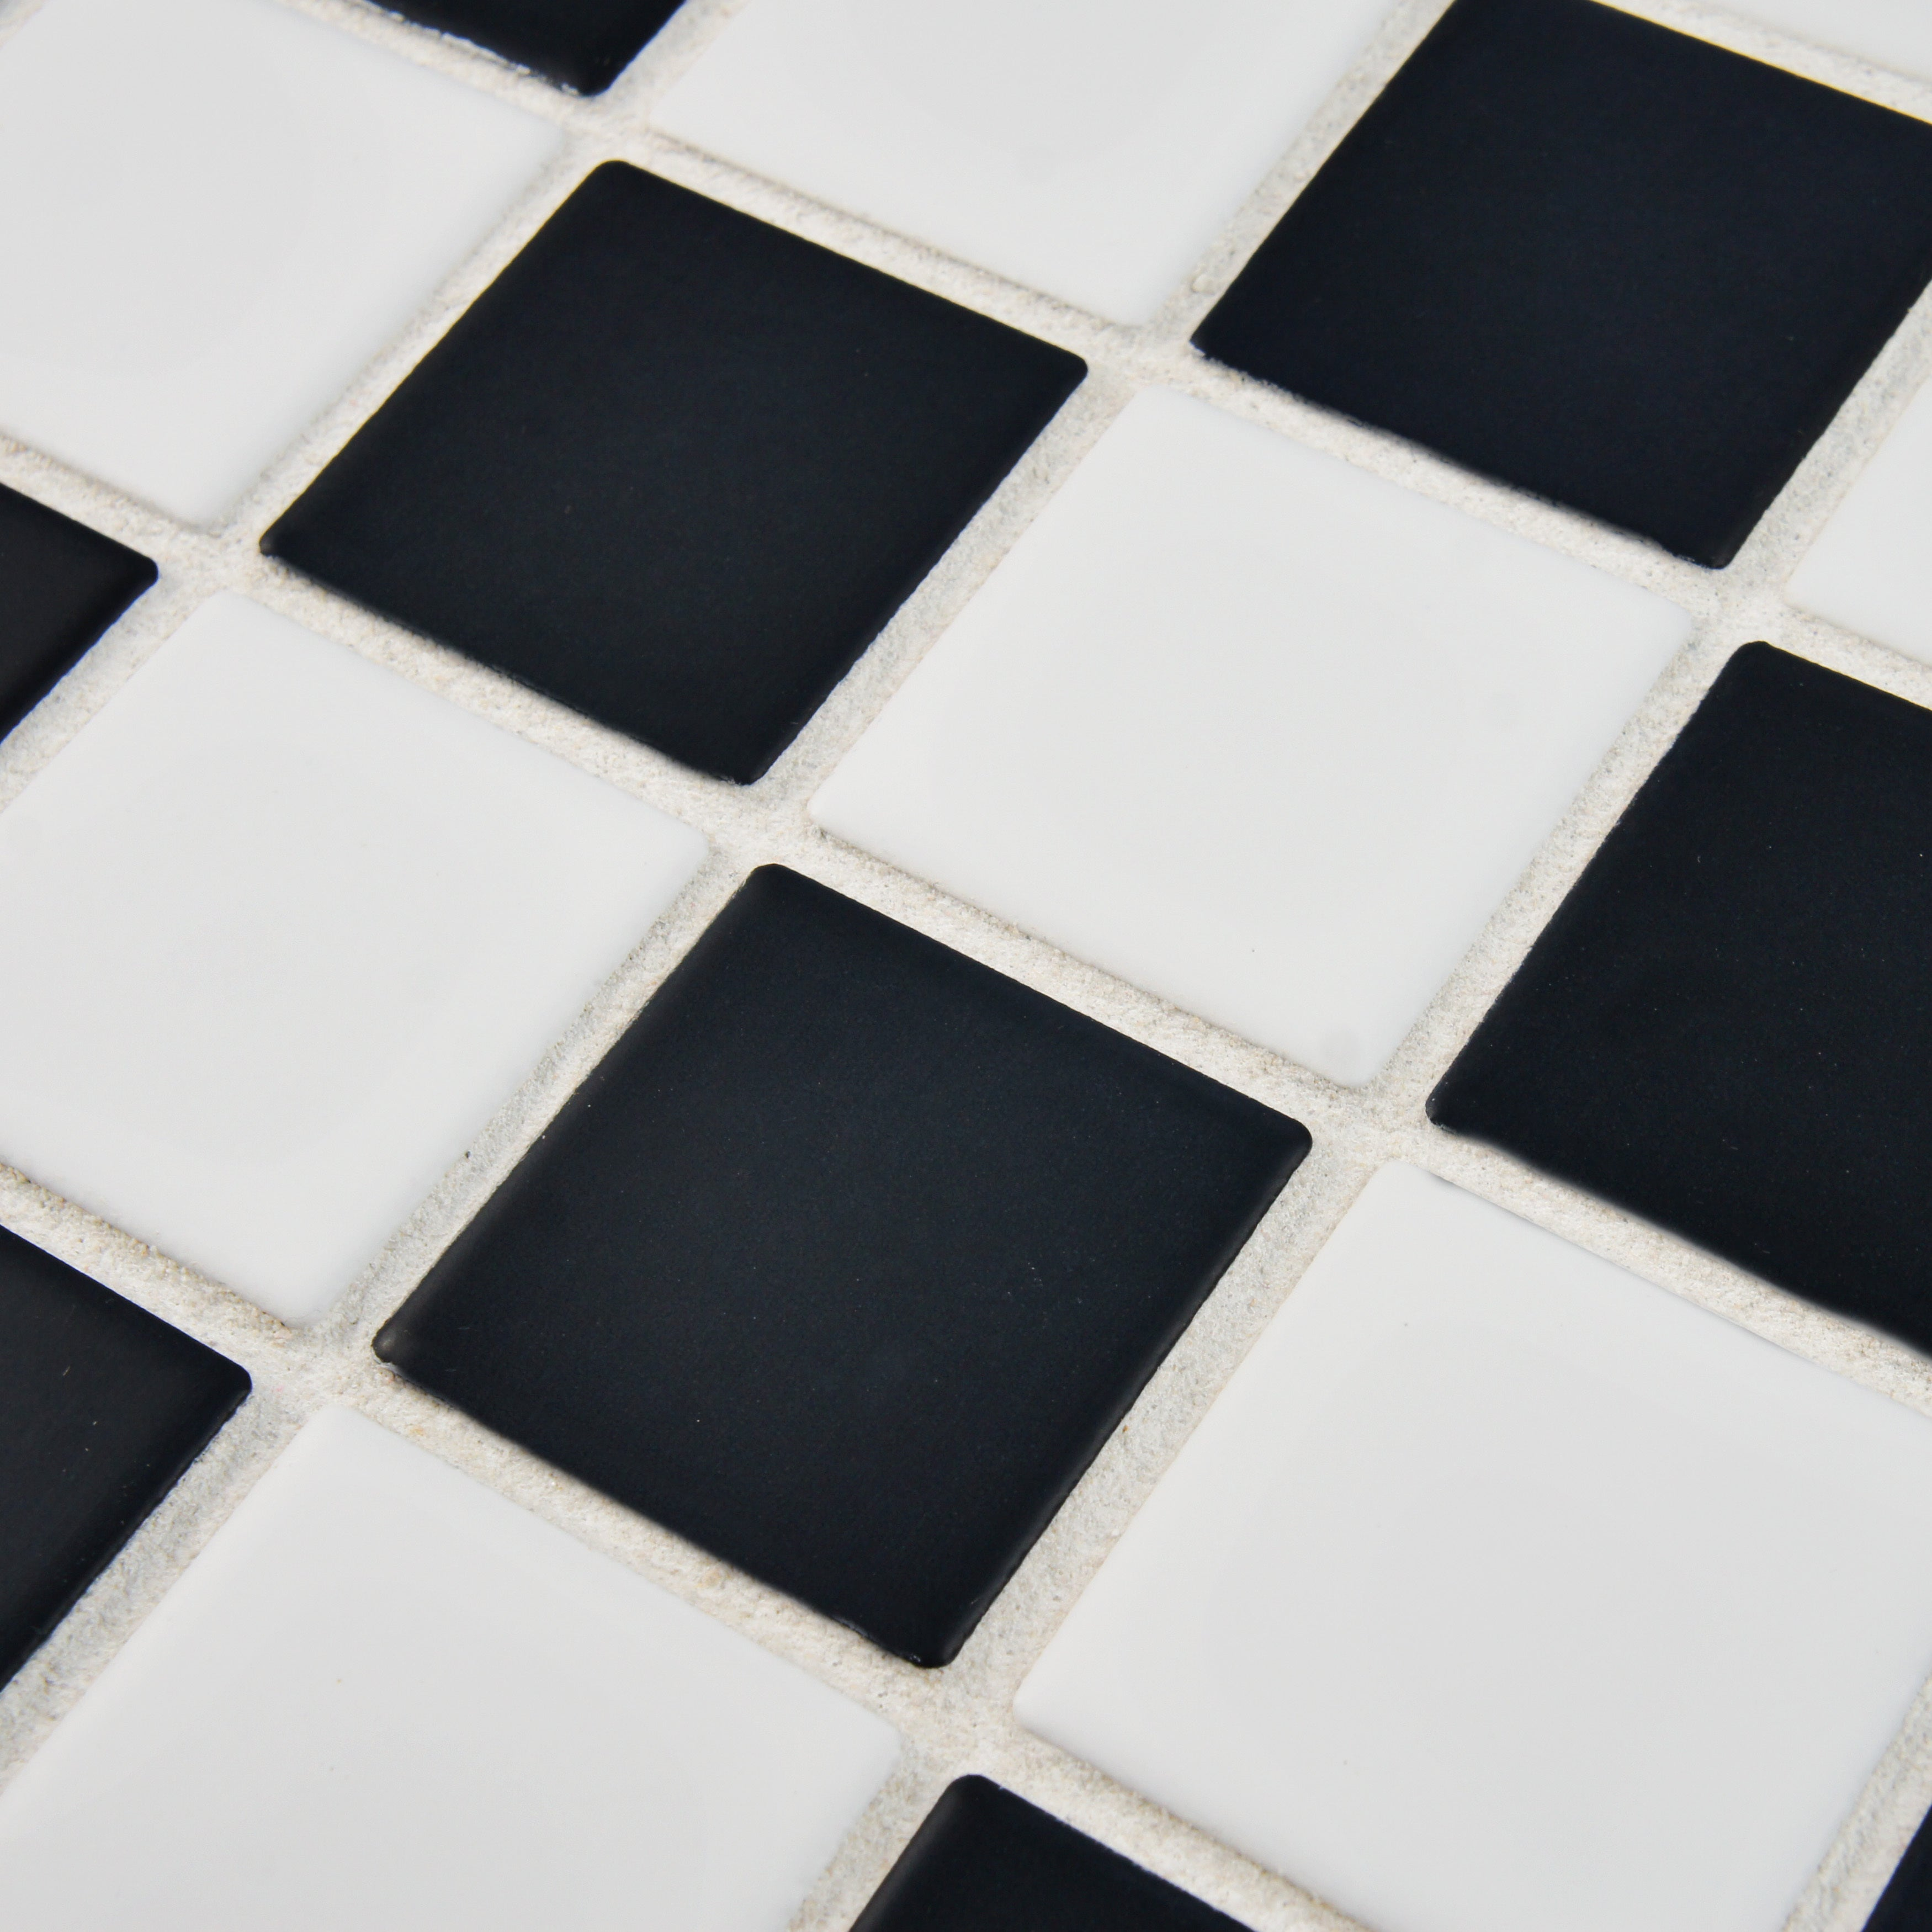 Checkerboard floor home design somertile 125x125 knight matte black white checkerboard porcelain floor and wall tile dailygadgetfo Images